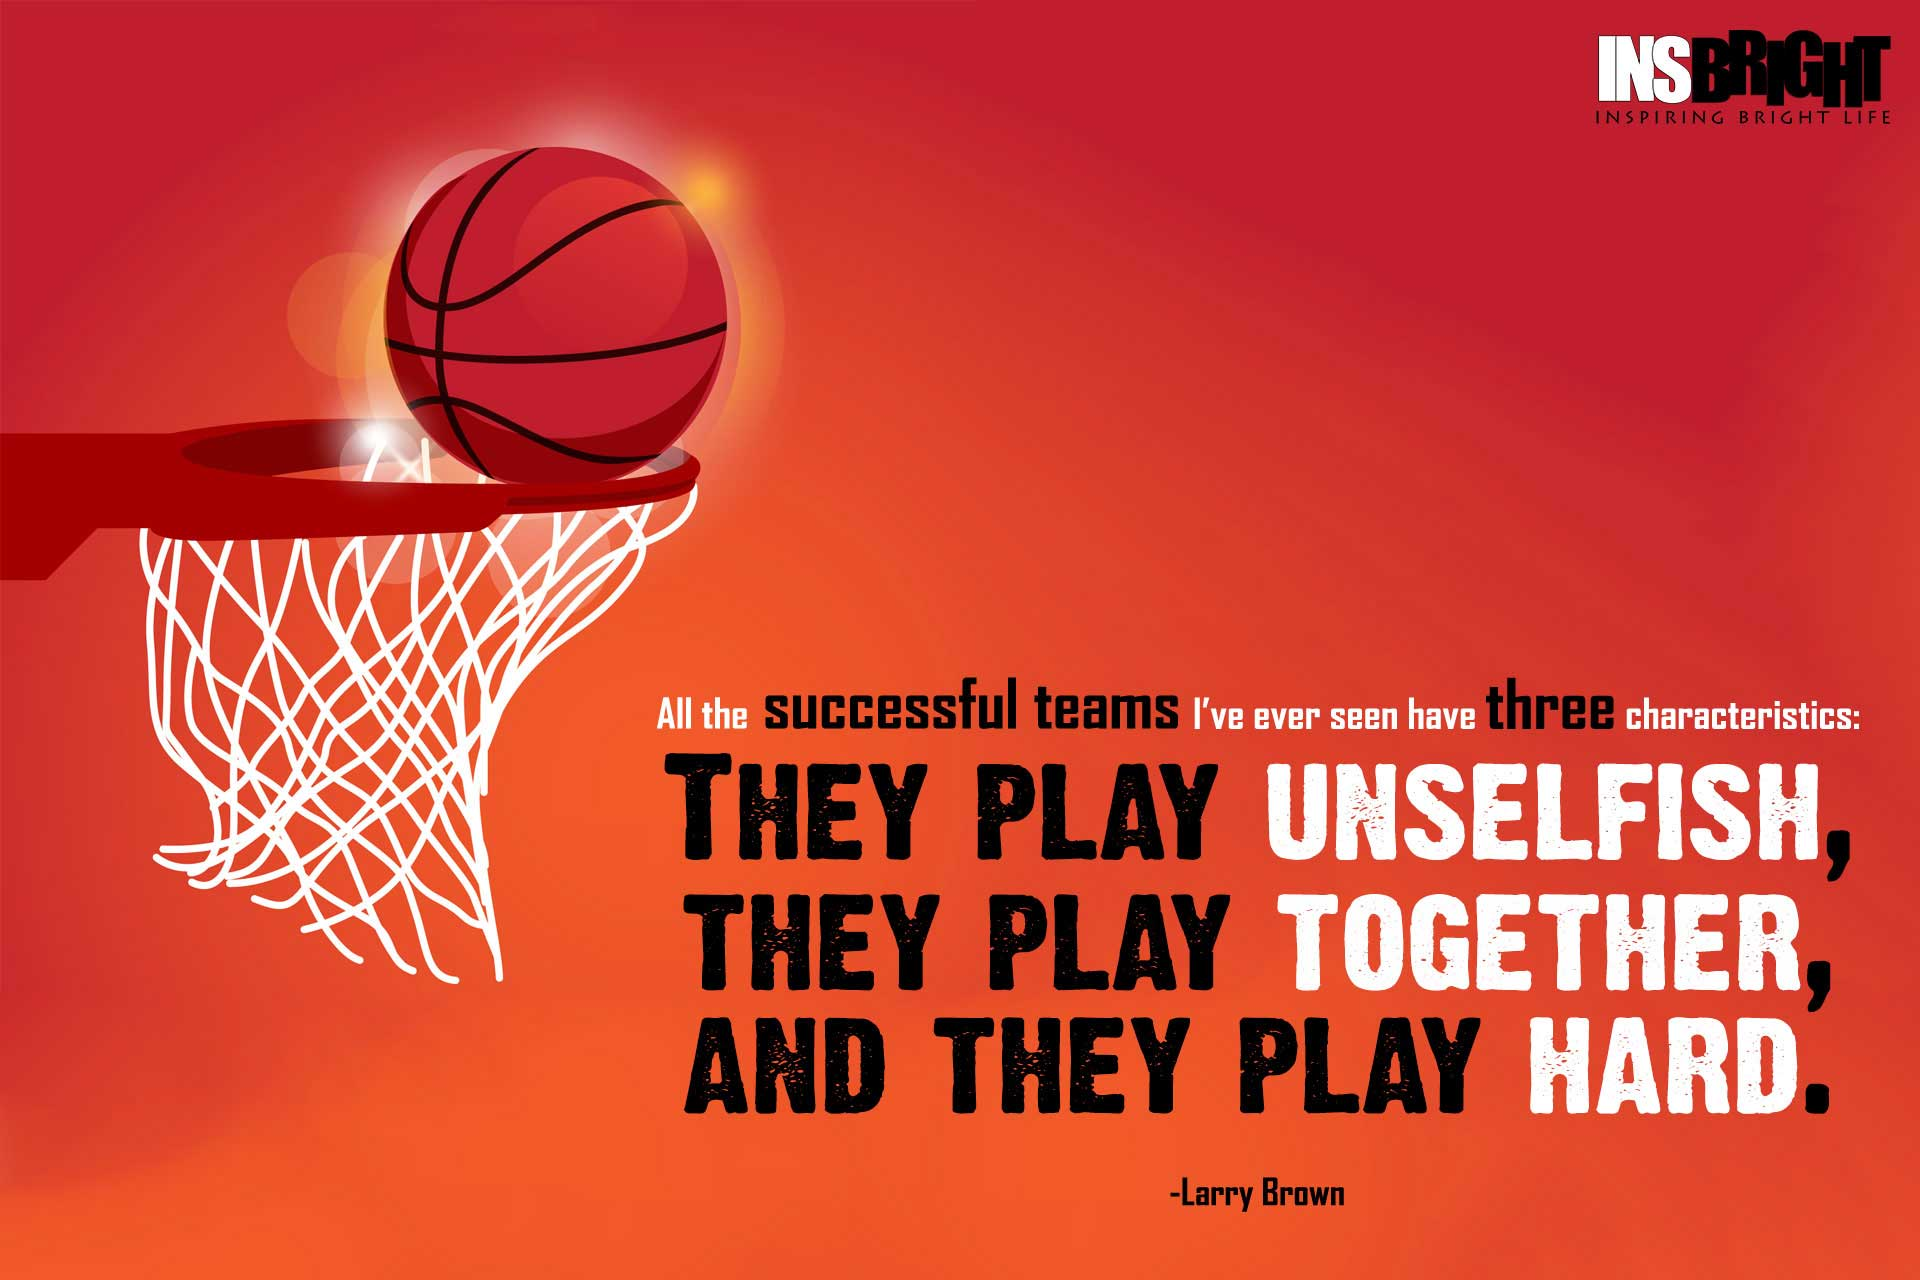 Quotes For Basketball Classy 50 Inspirational Basketball Quotes With Pictures  Insbright